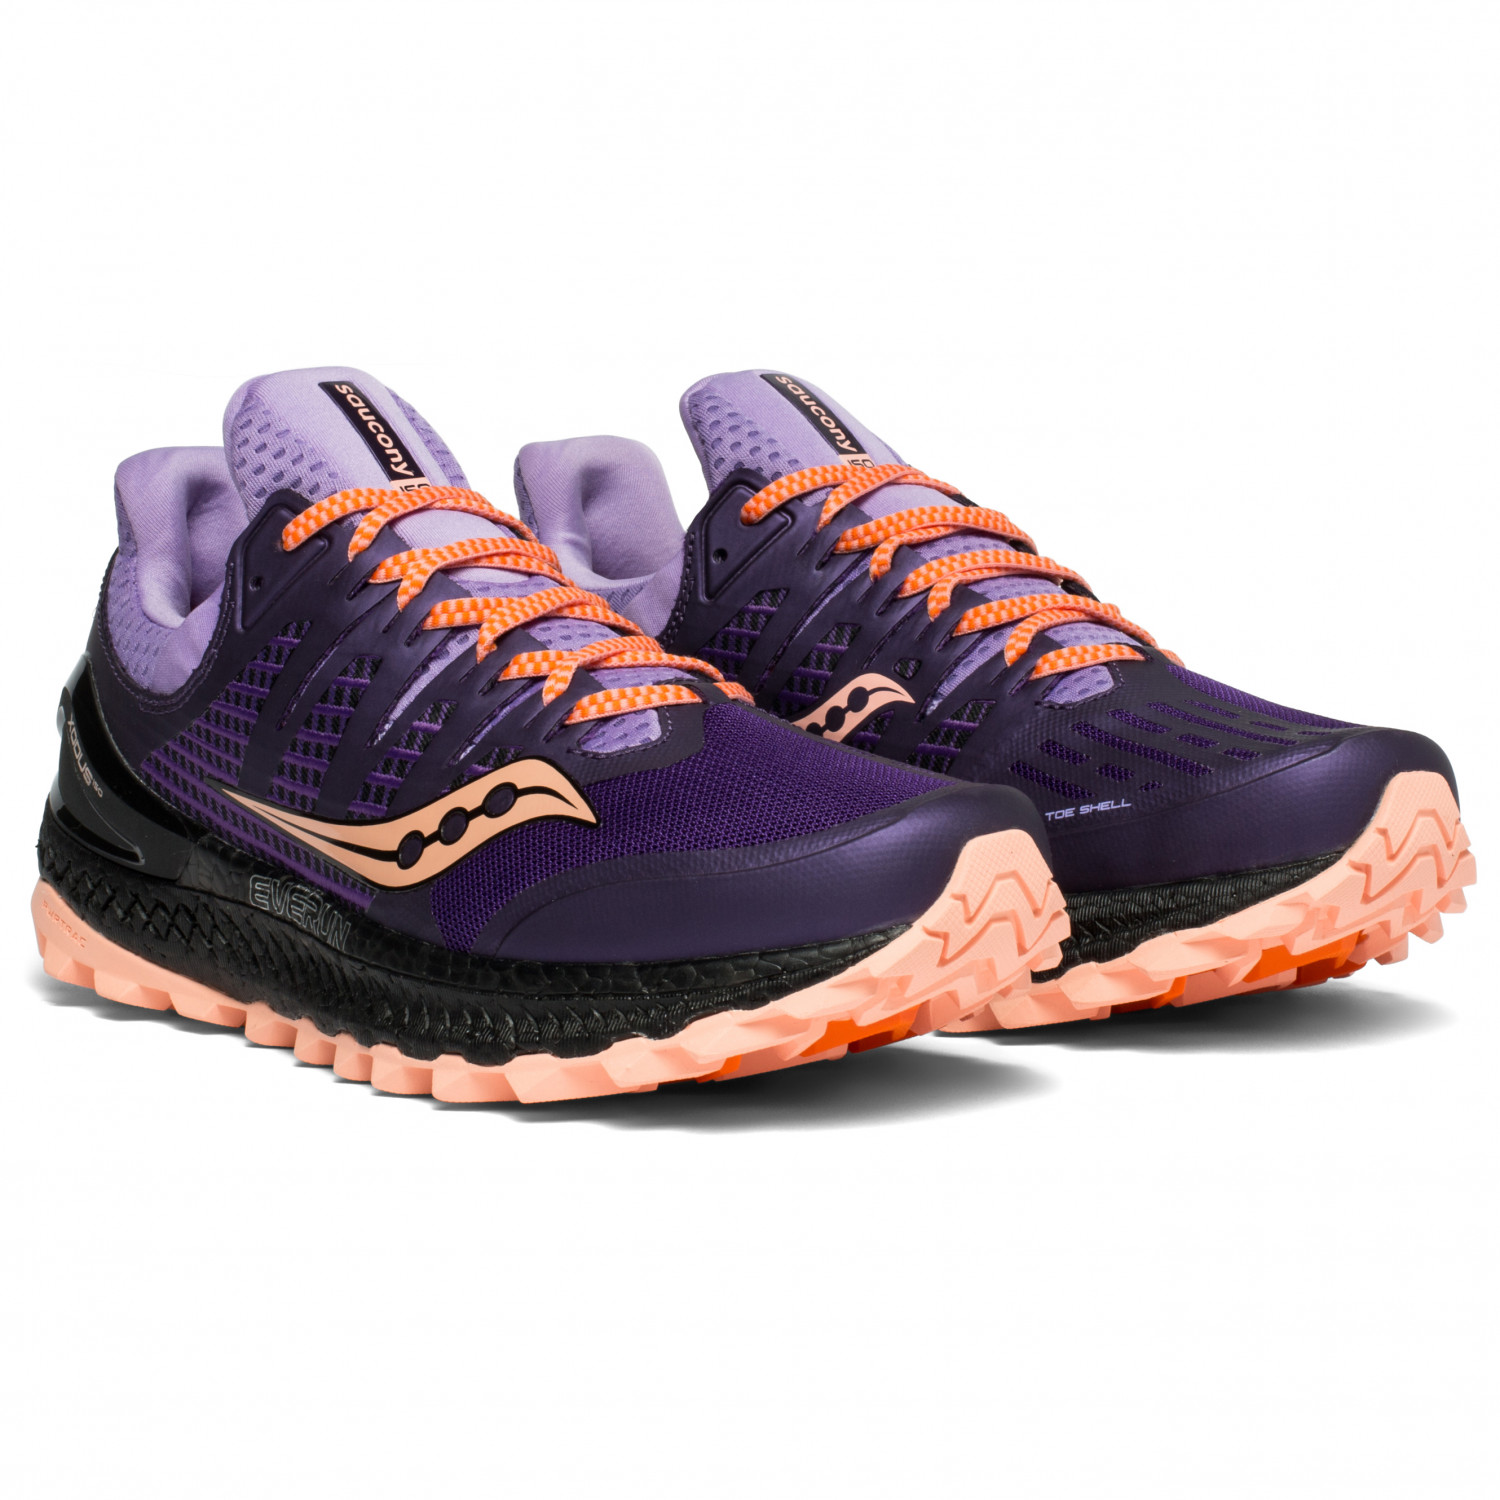 sports shoes d8357 a7052 Saucony - Women's Xodus Iso 3 - Trail running shoes - Purple / Peach | 6,5  (US)